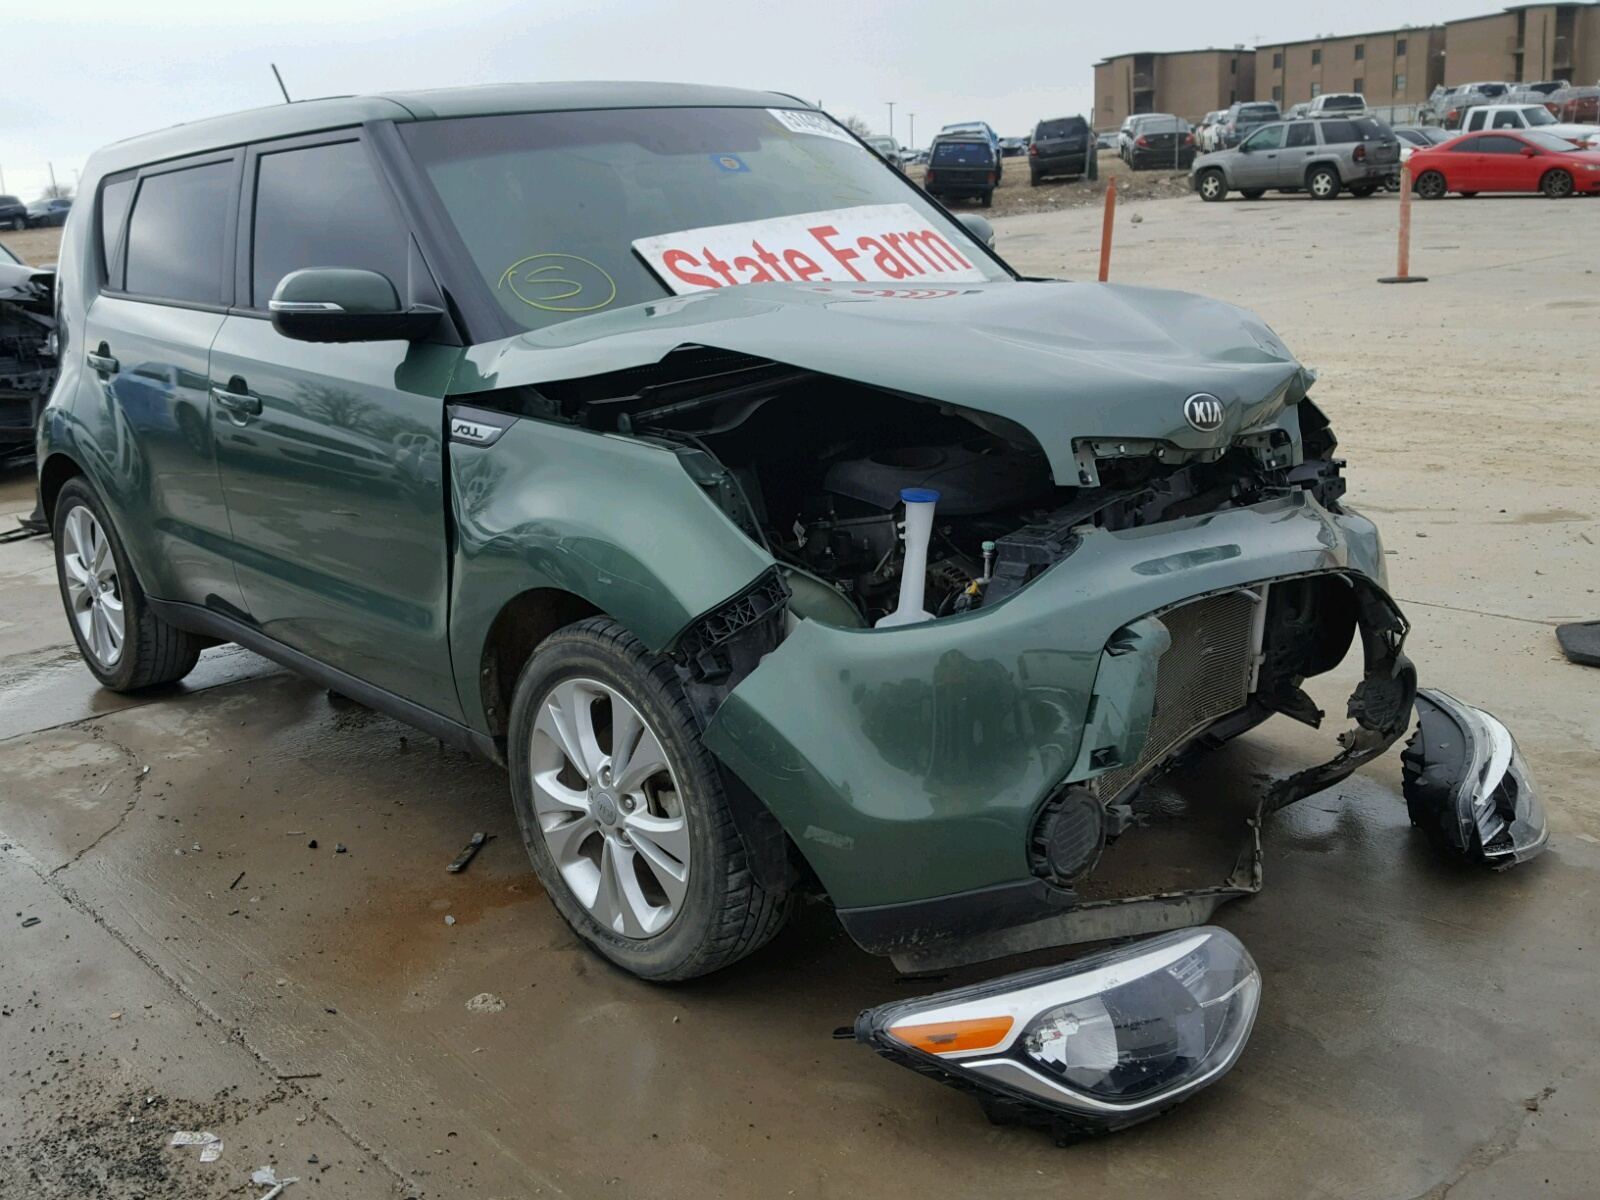 en kia vehicle salvage tx view copart carfinder on online sedona auto in left dallas sale lot auctions white title lx